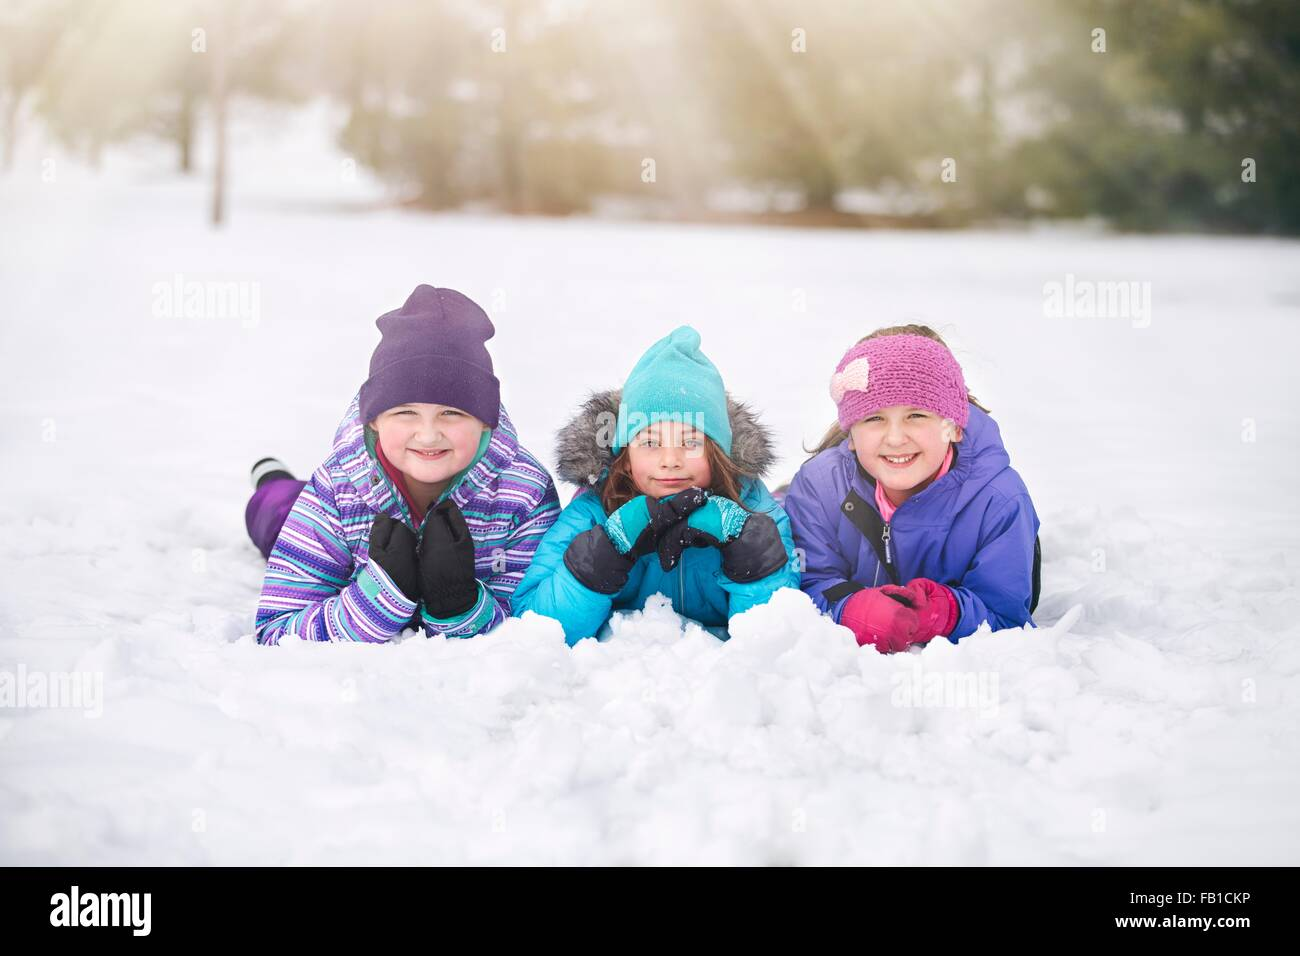 Friends wearing knit hats lying on front side by side in snow looking at camera smiling - Stock Image